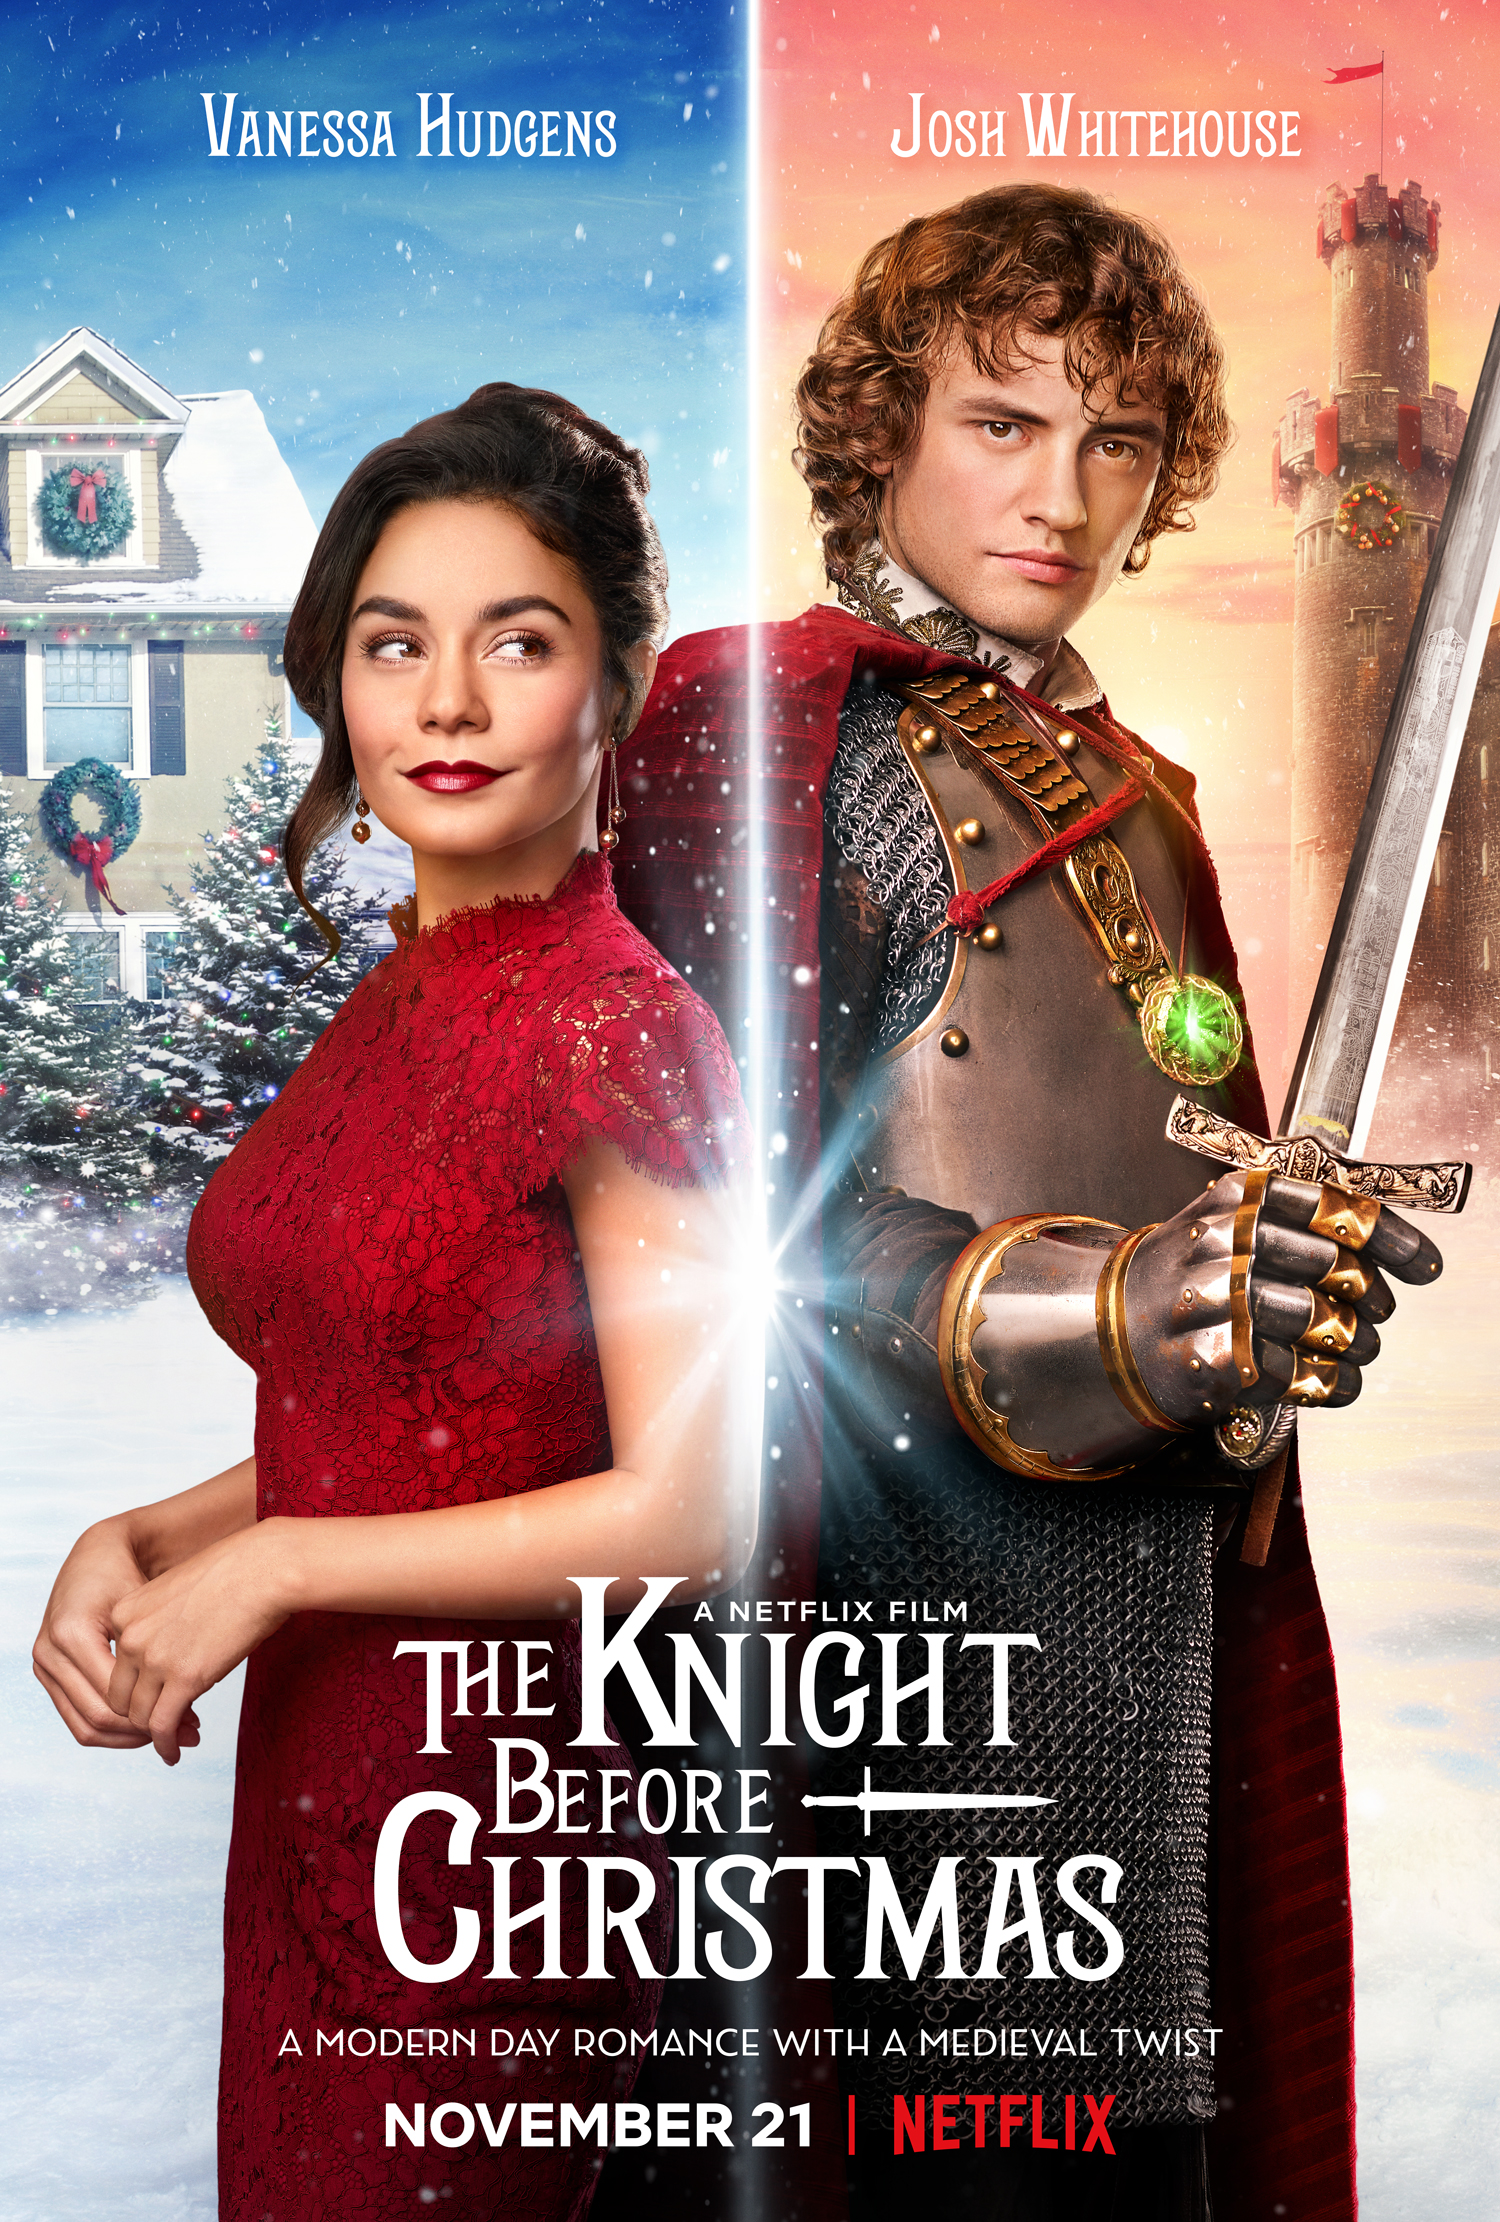 The Knight Before Christmas - Poster.jpg